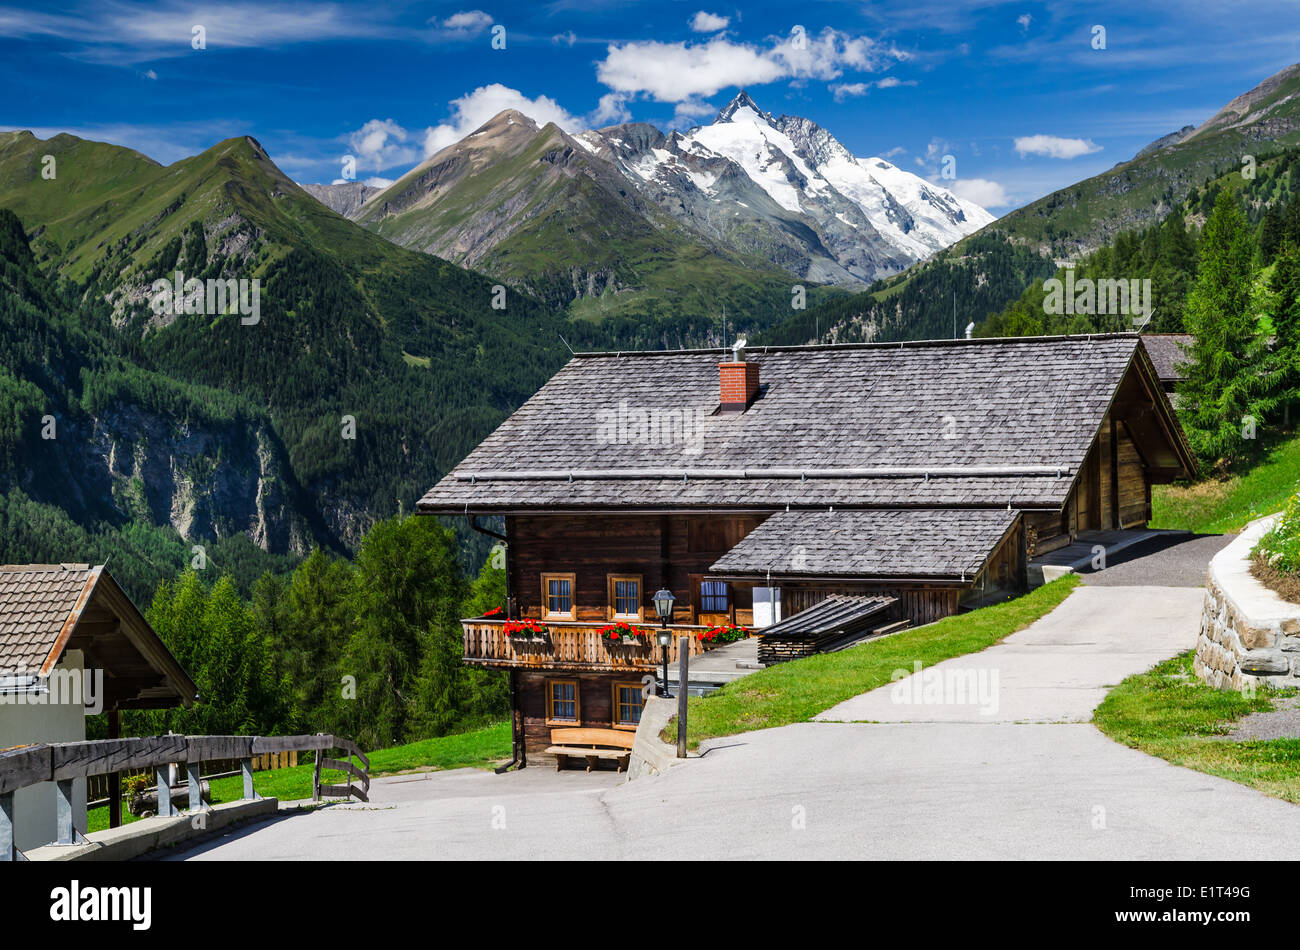 Rural landscape in Tirol Alps with the highest mountain from Austria in background, Grossglockner (3797 m. elevation) - Stock Image